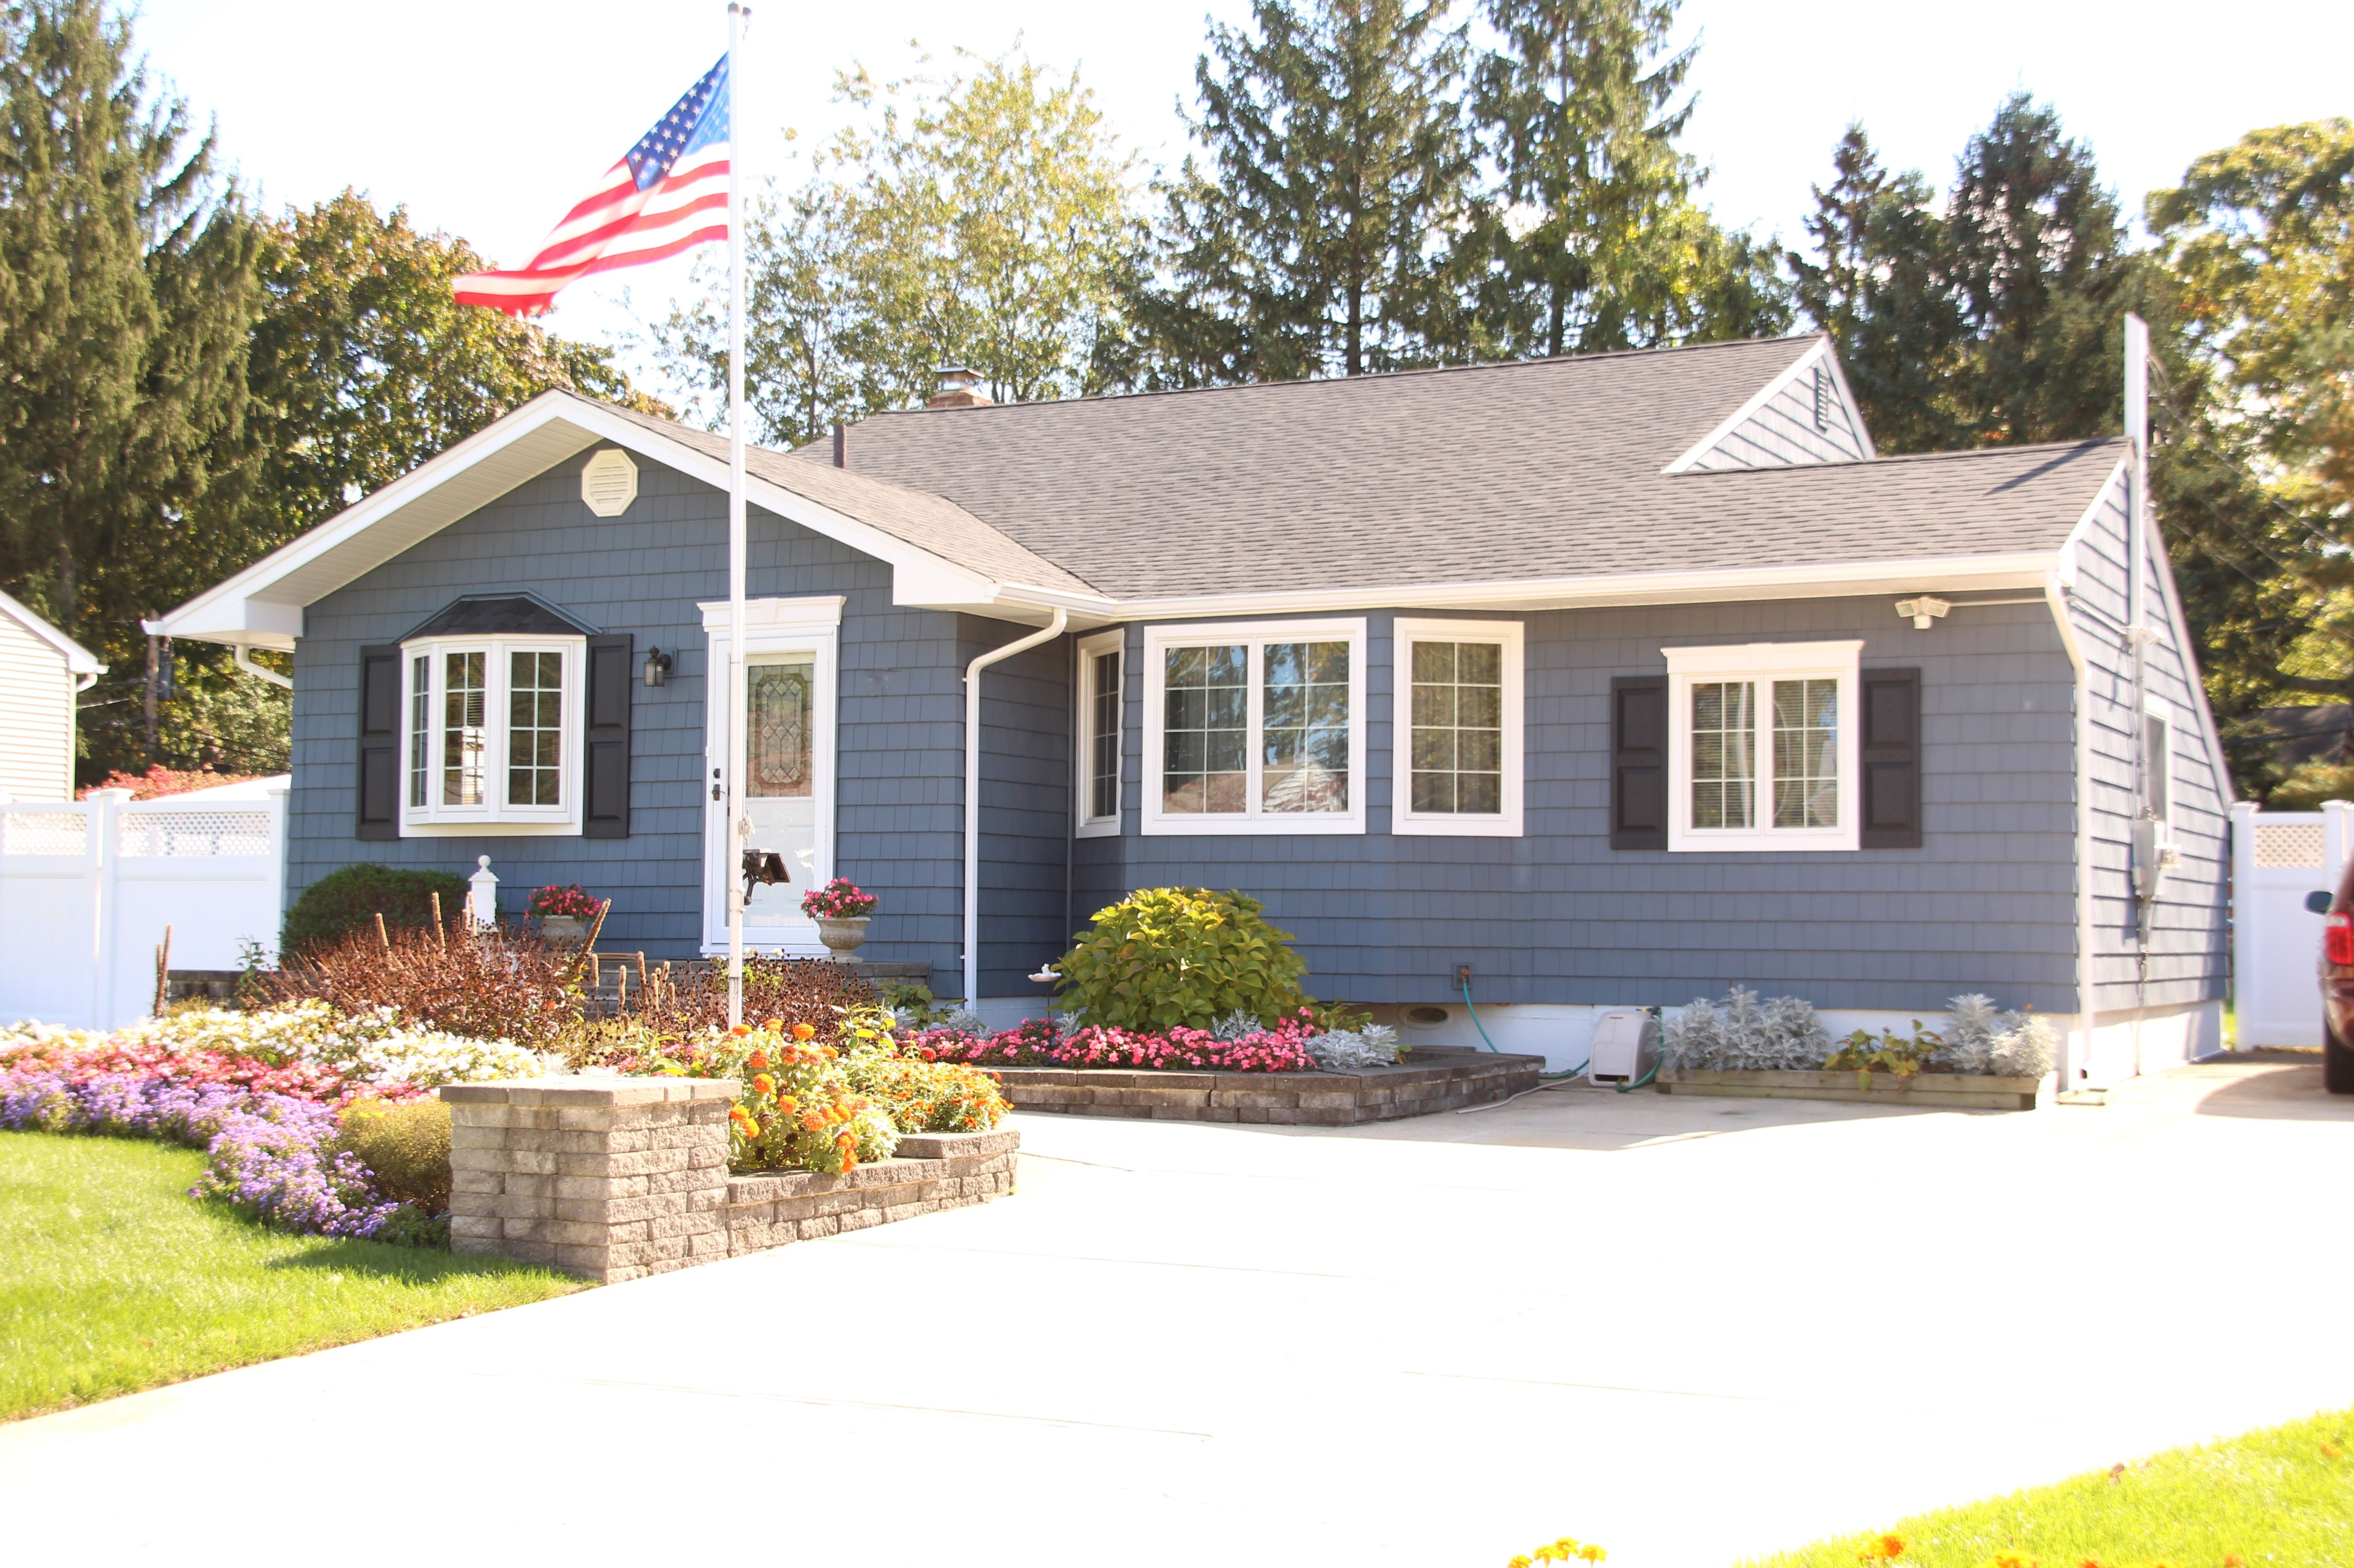 This Modified Ranch Home Is Patriotic With Its Flag Pole And American Flag Yet Is Stoic With It S Blue Vinyl Ranch House Exterior Blue Siding Blue Vinyl Siding